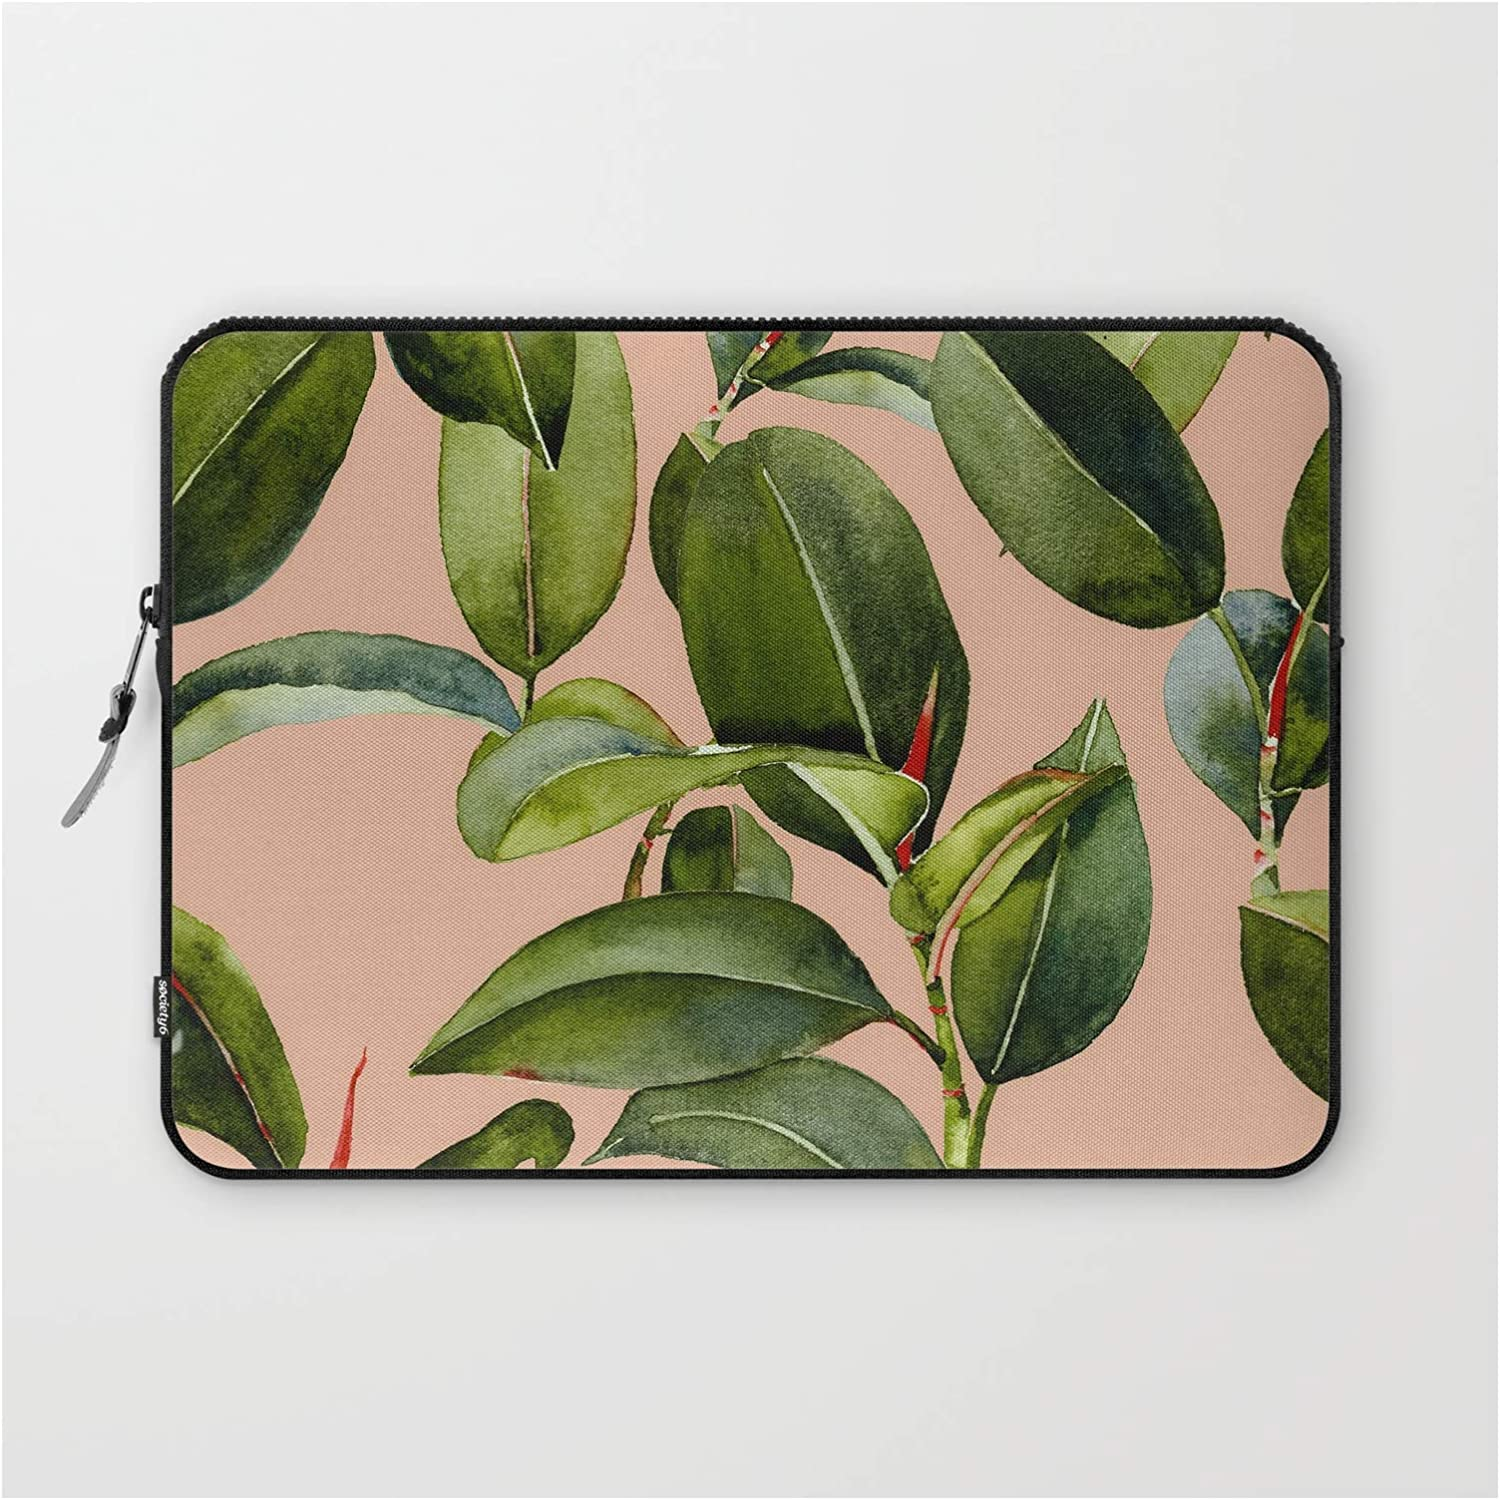 Botanical Limited time for free shipping 5 ☆ popular Collection 01 by Mmartabc Sleeve - on Sl Laptop